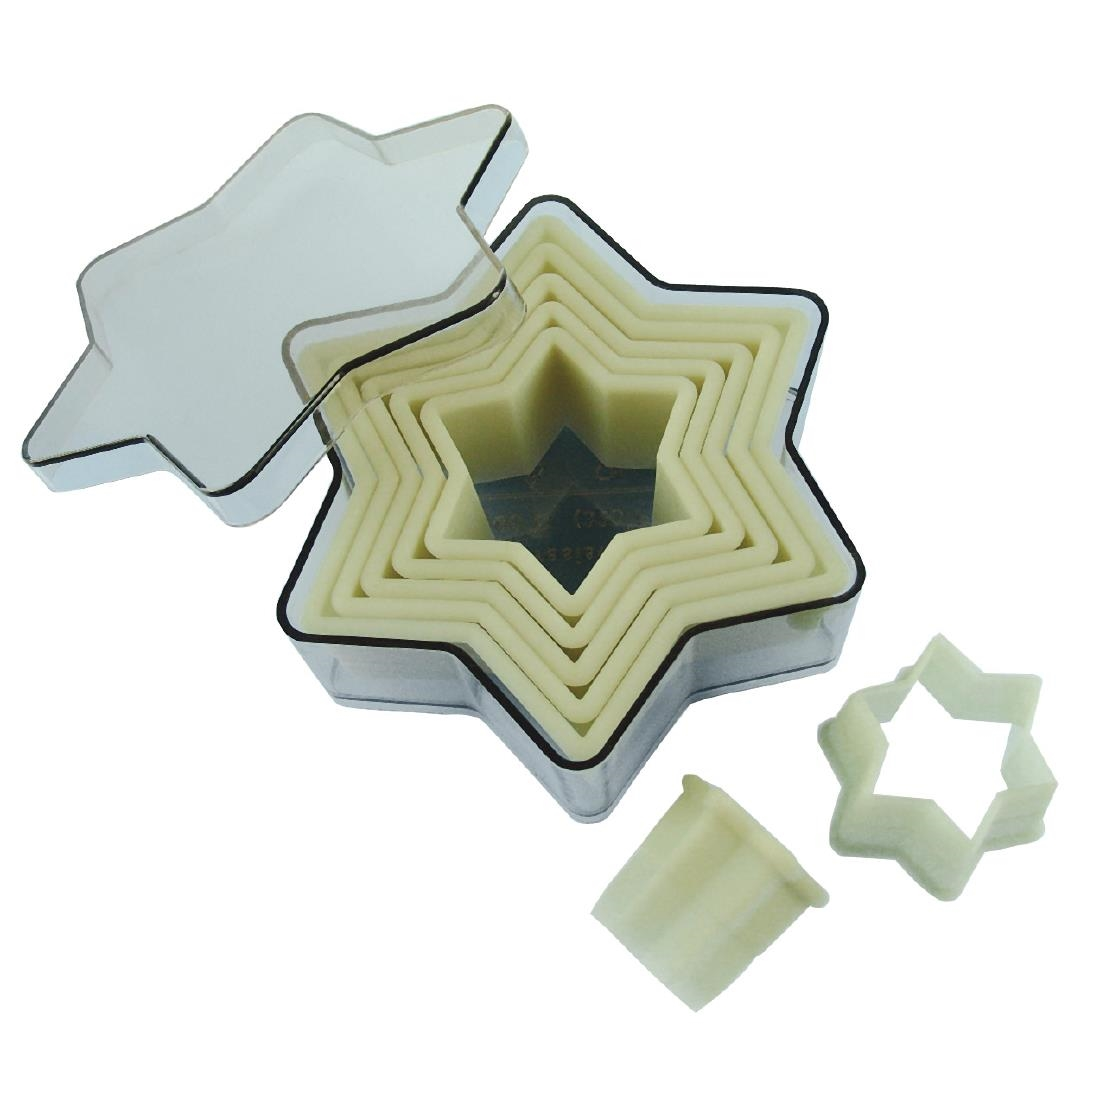 De Buyer Plain Star Pastry Cutters Set of 7 Pack of 7